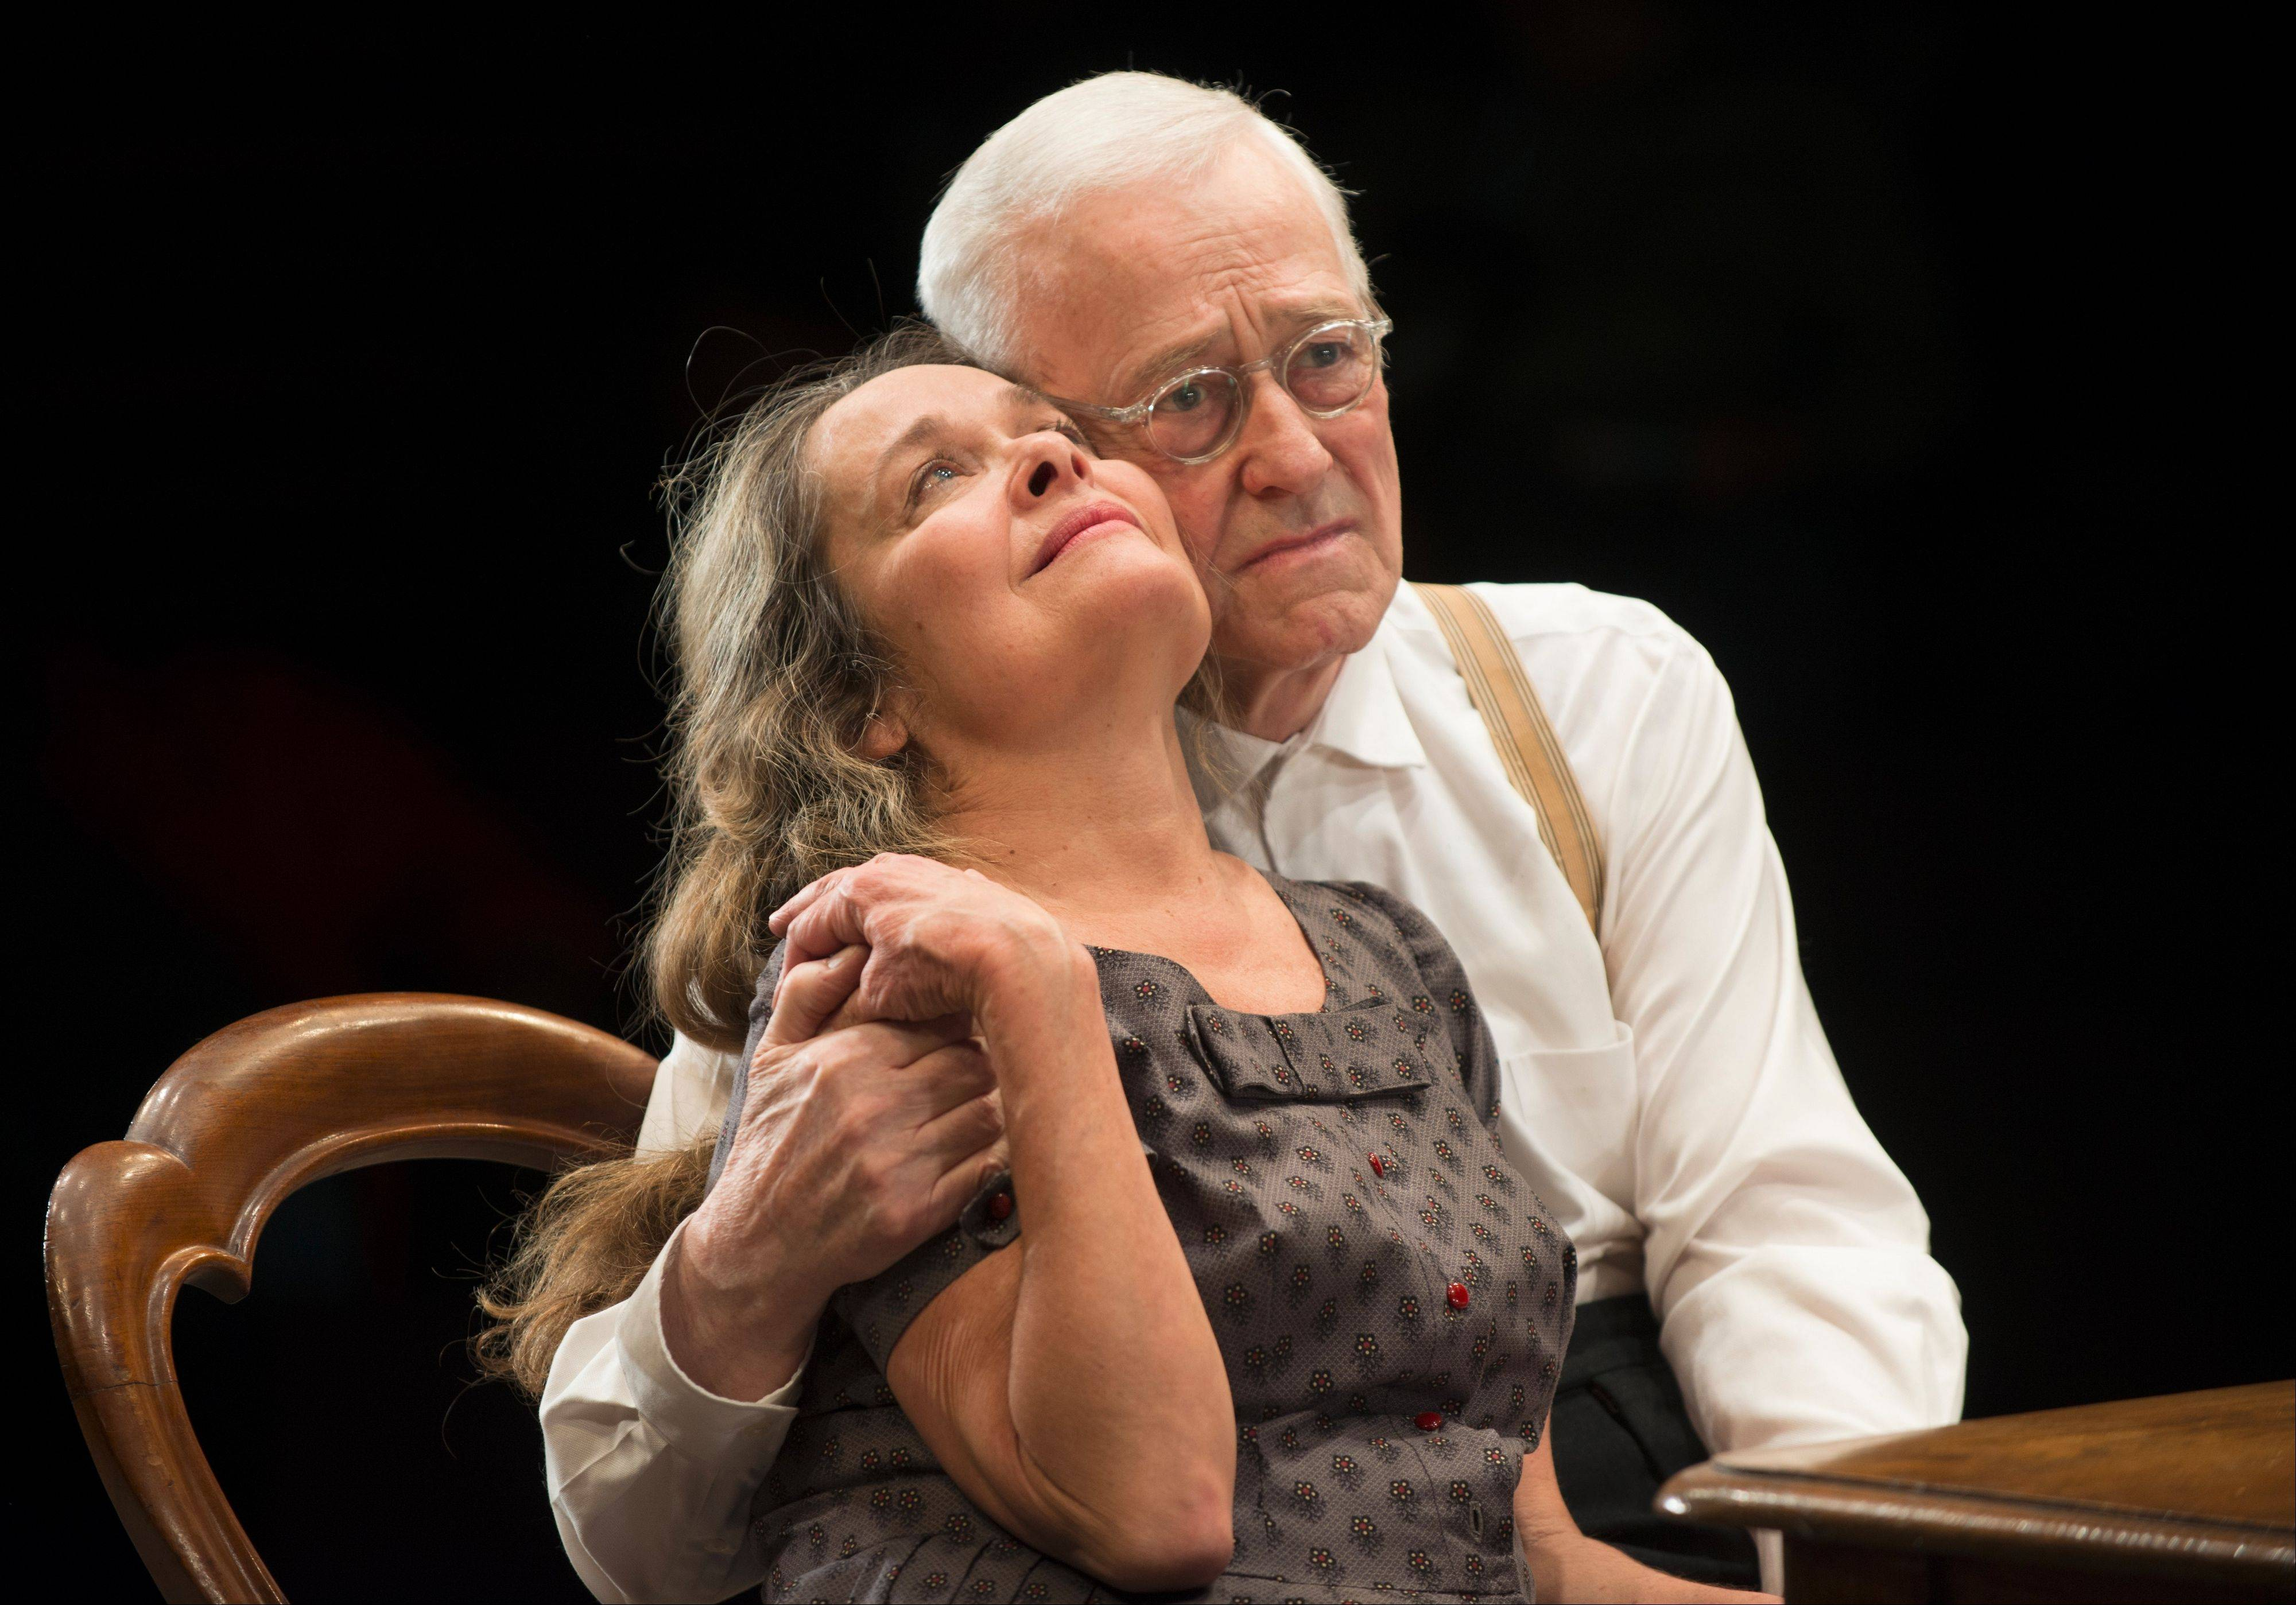 John Mahoney, currently starring in Steppenwolf Theatre Company�s �The Birthday Party� with Moira Harris, returns to Northlight Theatre in Skokie as part of the 2013-14 season announced Monday.